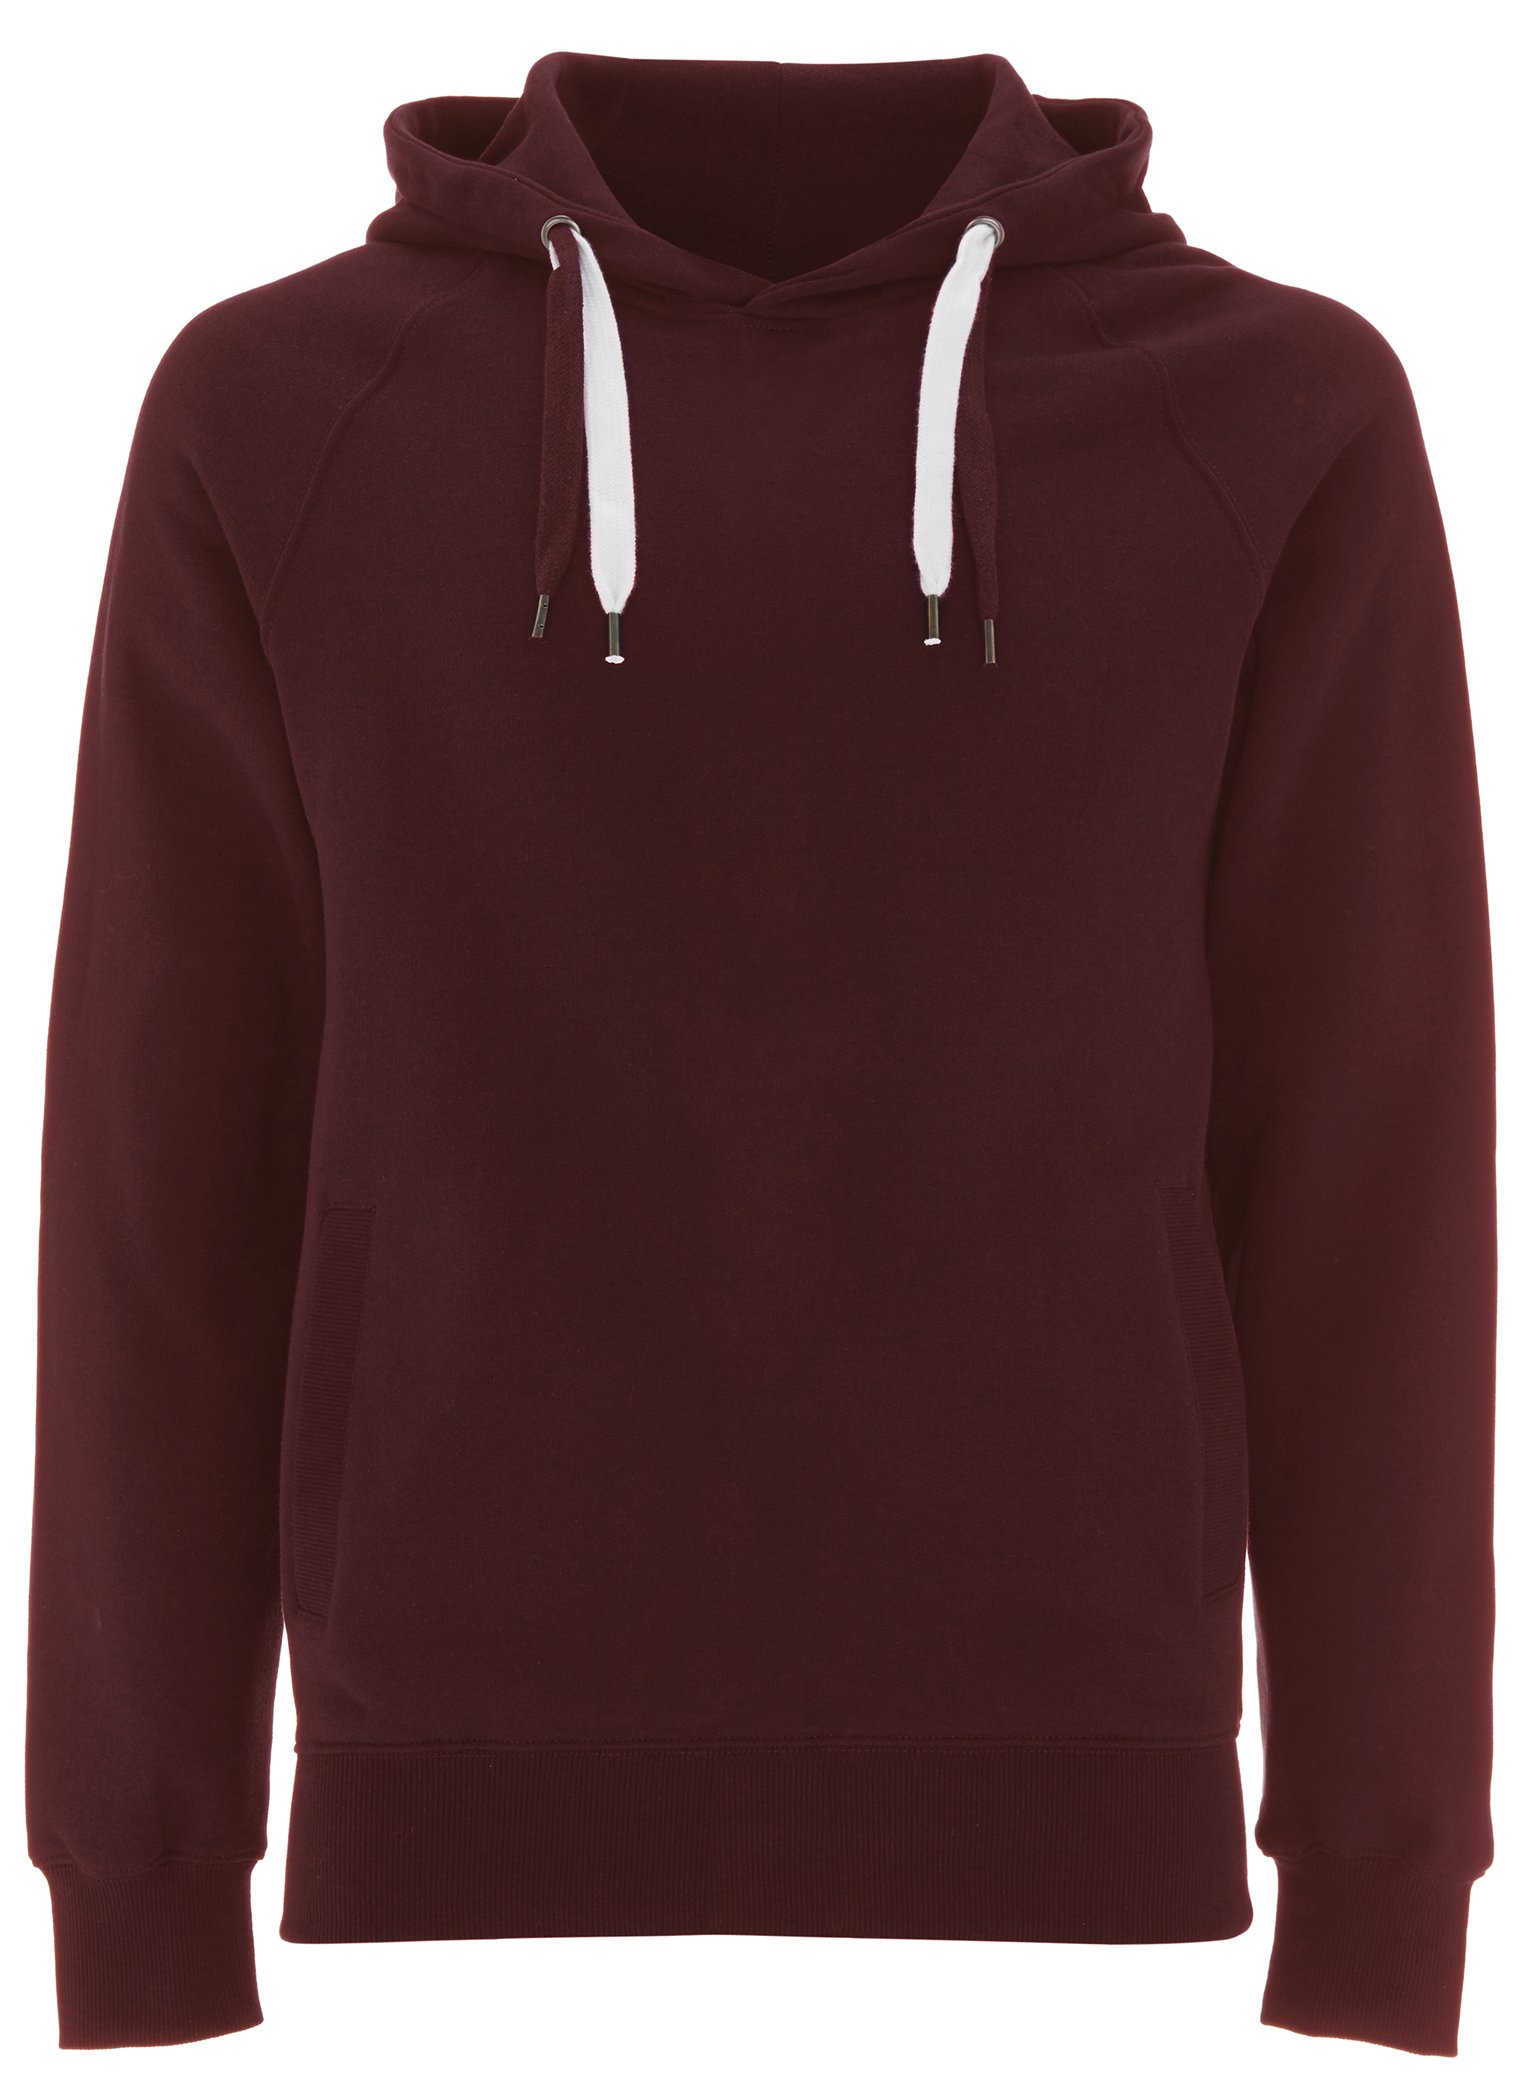 Claret Red Pullover Hoodie for Women - Small - Womens Hooded Cotton Sweatshirt by Underhood of London